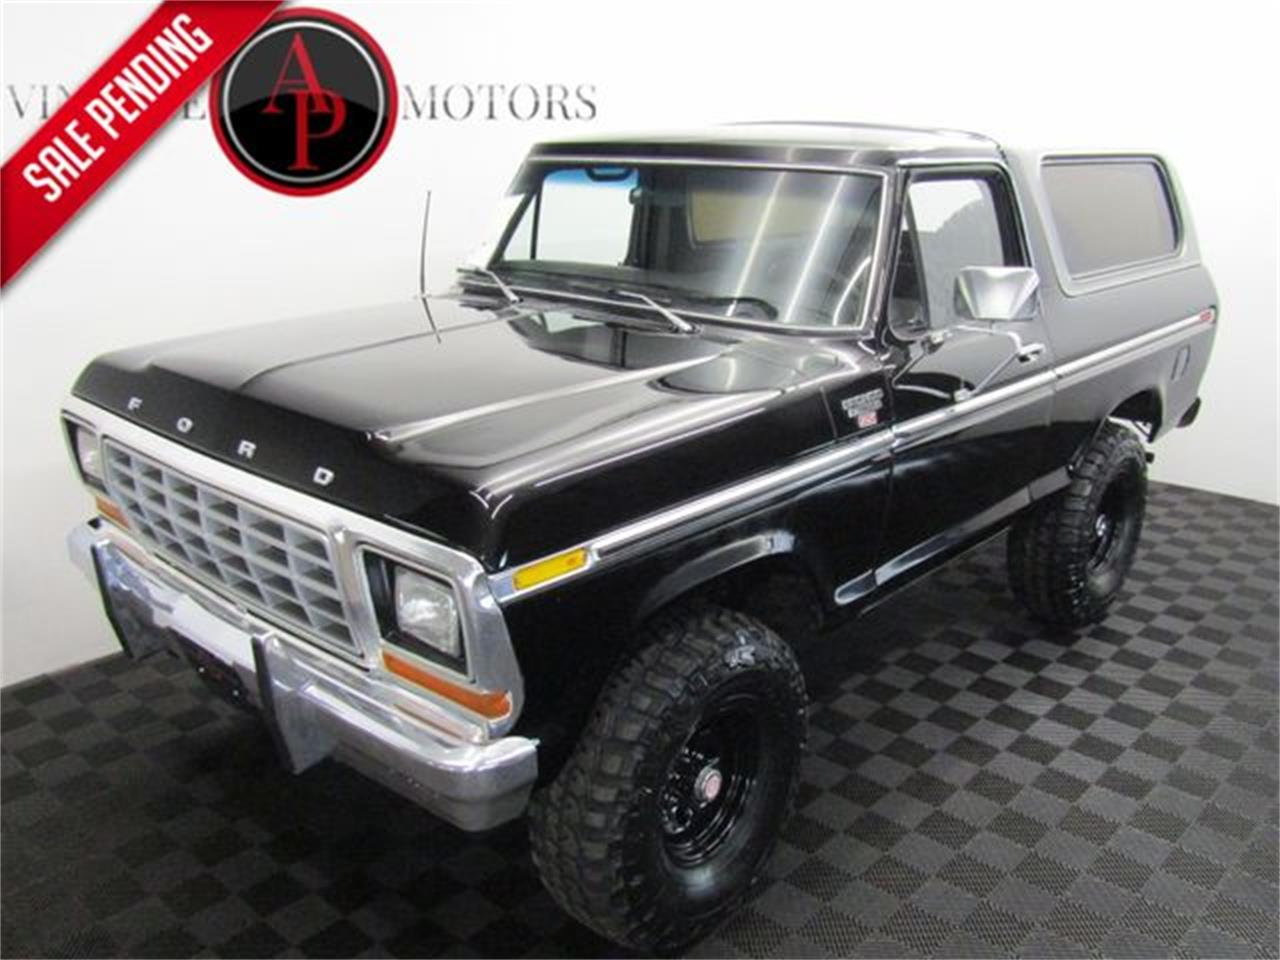 Large Picture of '78 Ford Bronco located in North Carolina Offered by AP Vintage Motors - PXSY